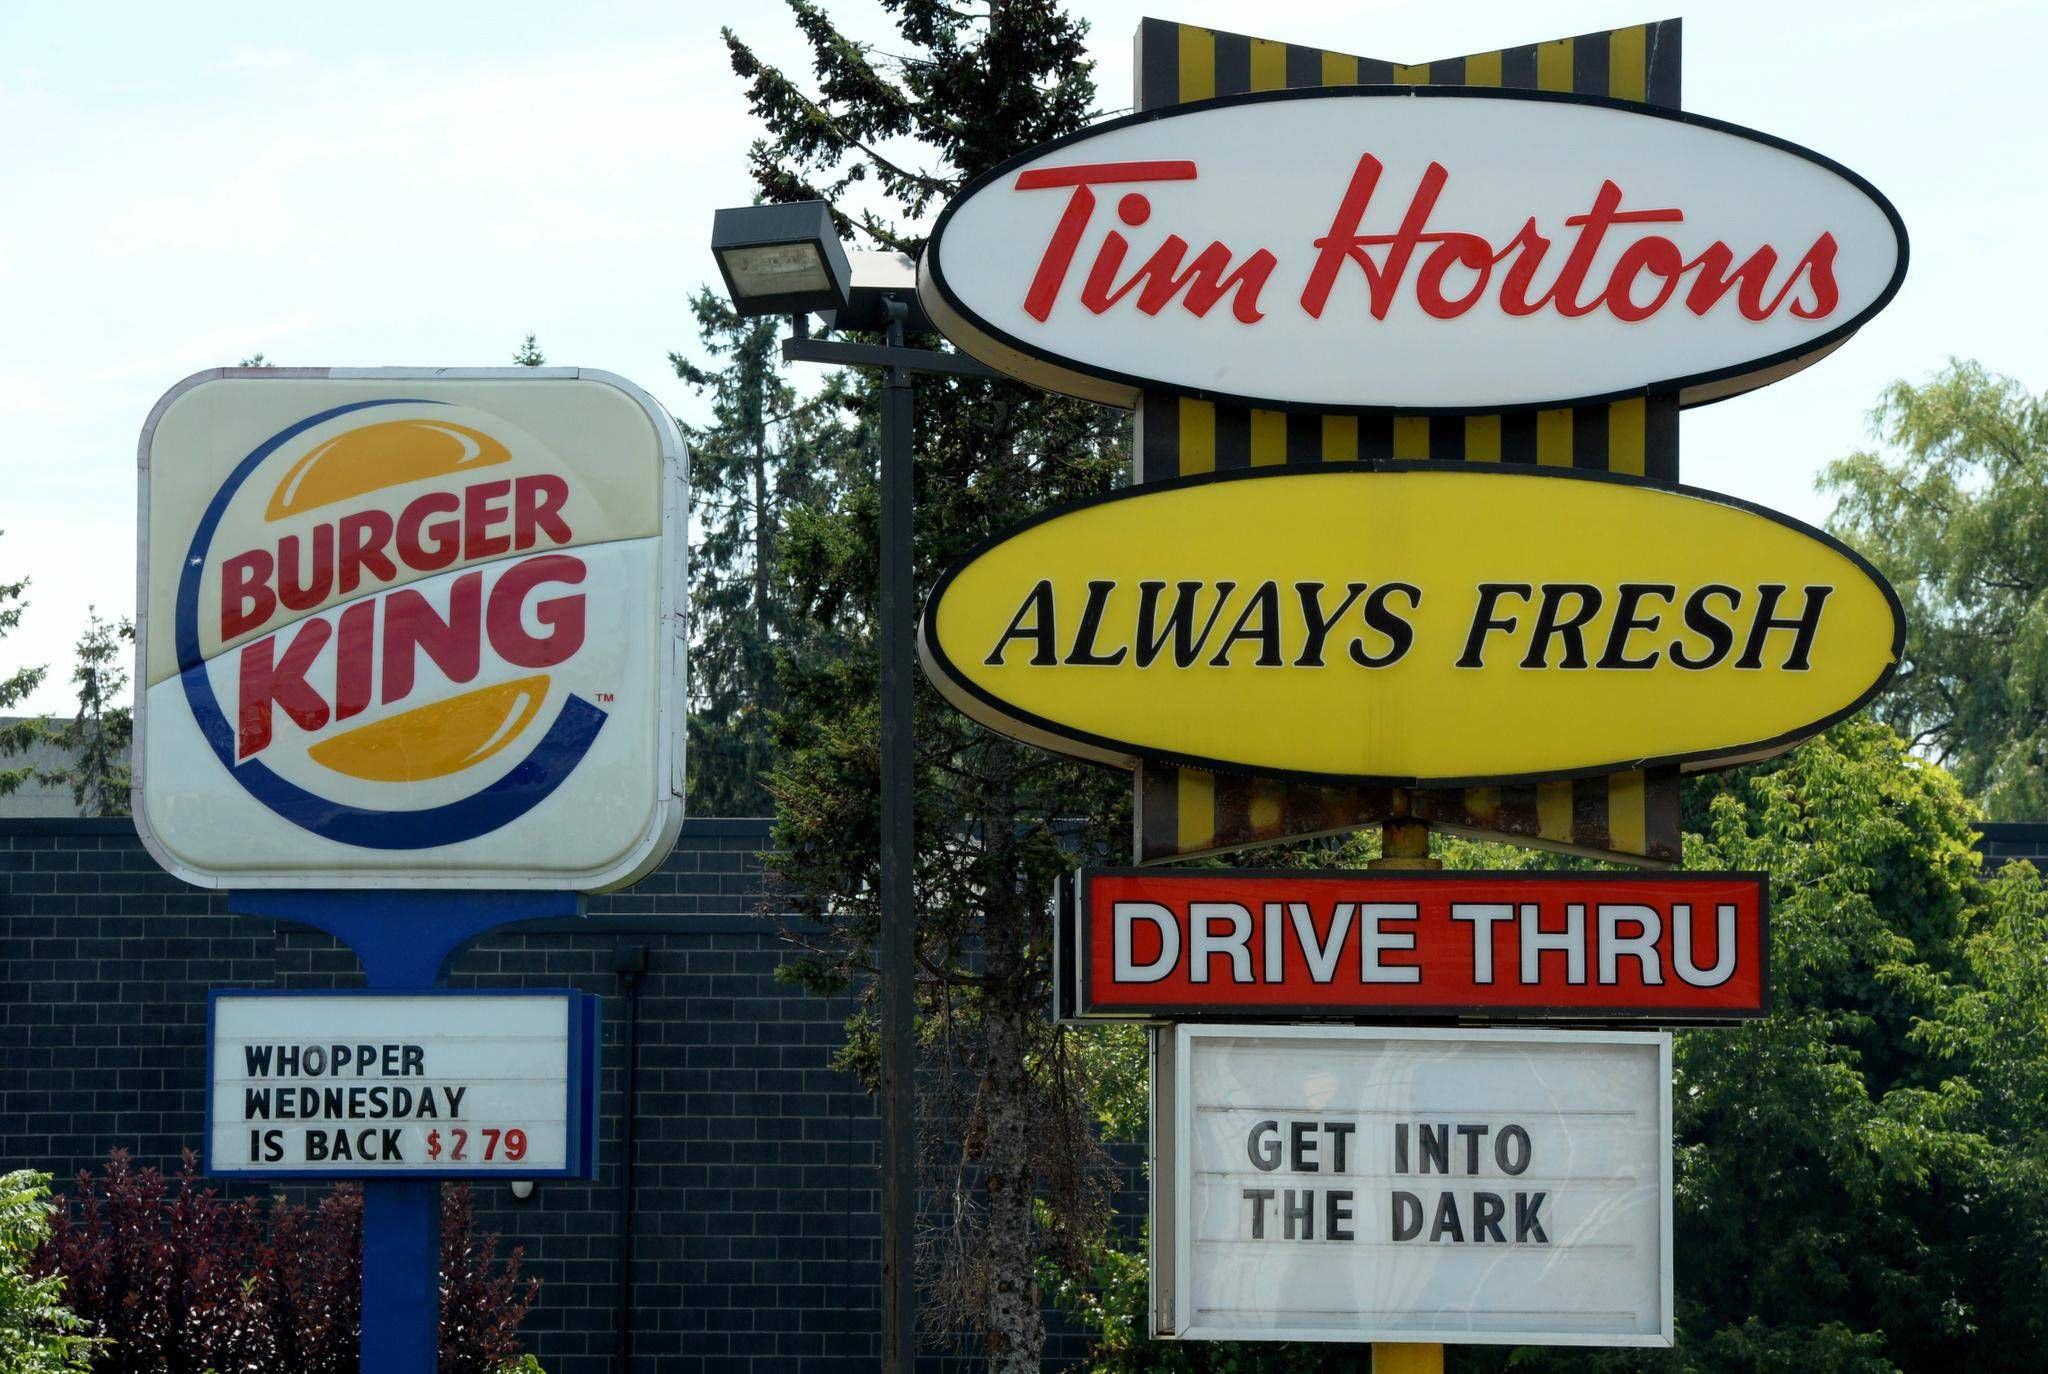 Tim Hortons Burger King Plan App In Latest Push Towards Automation